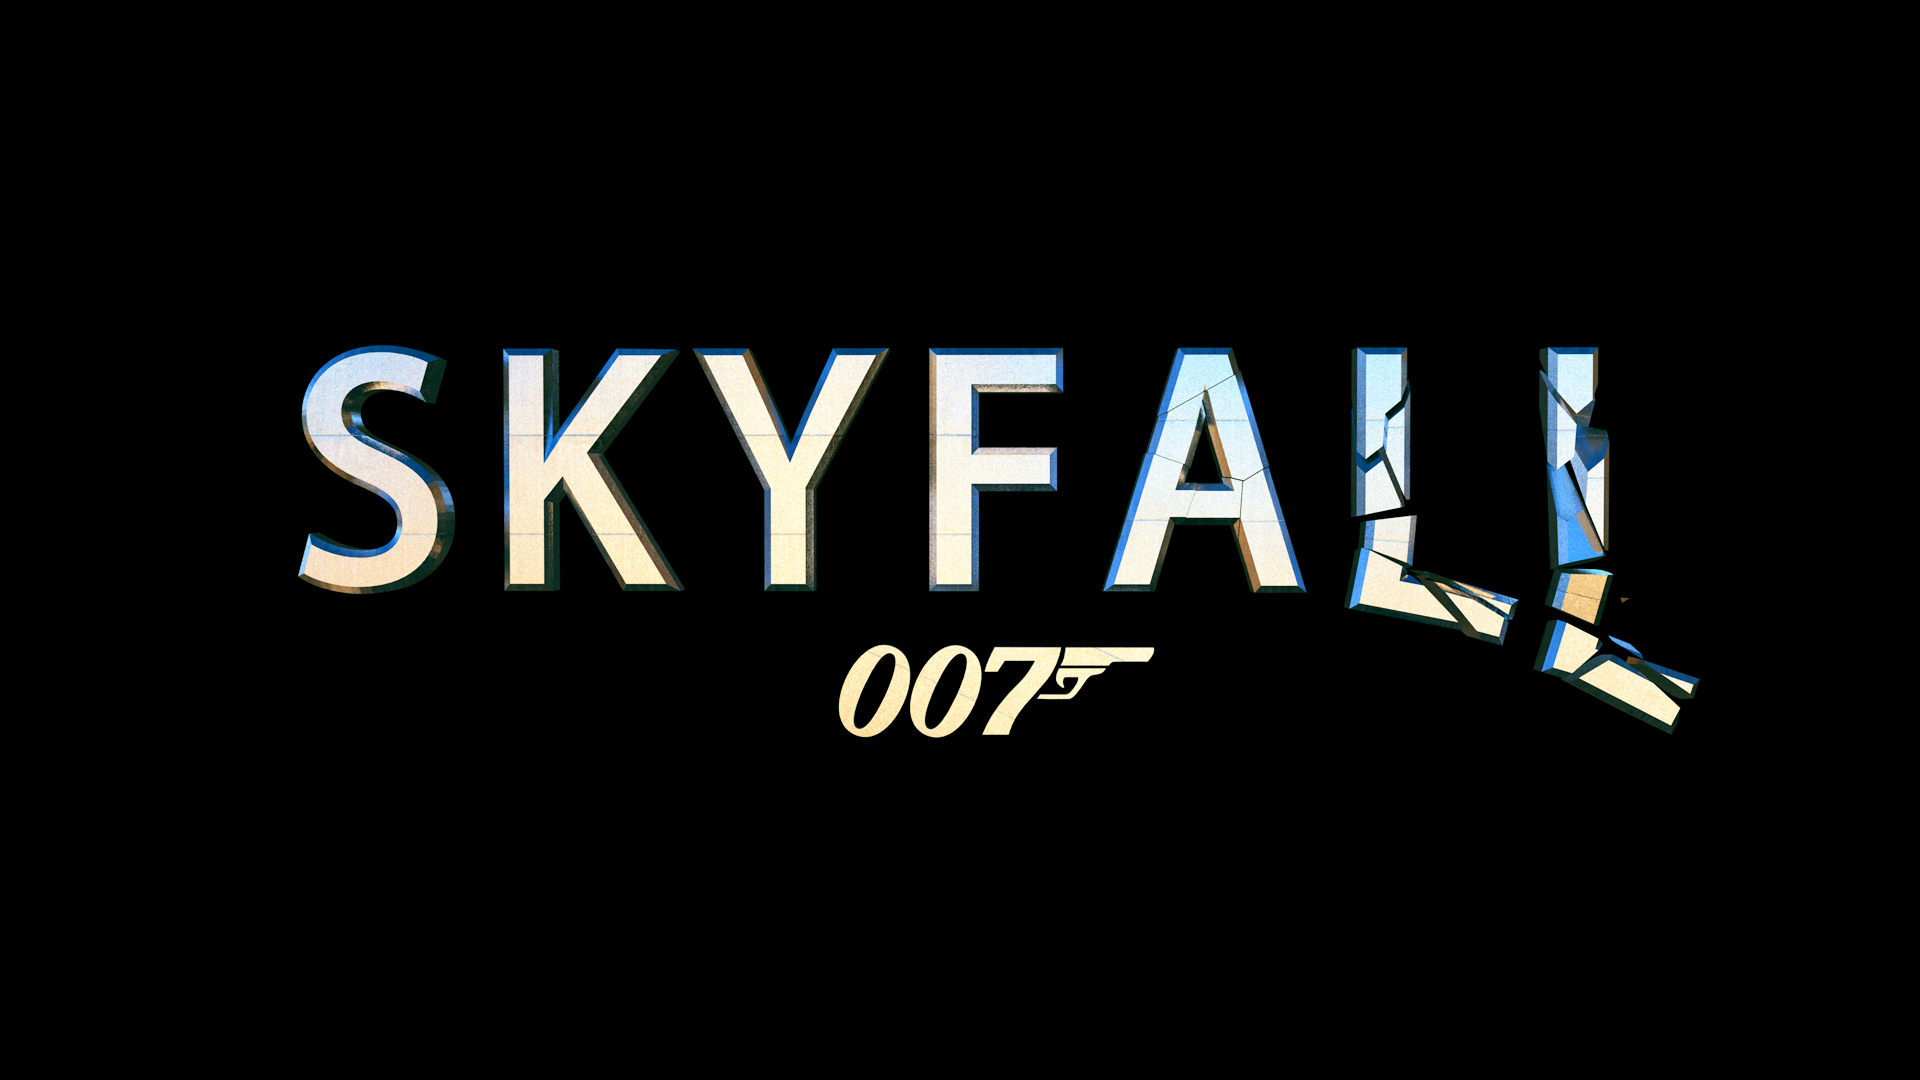 james bond 007 skyfall wallpaper 4 | wallpapersbq